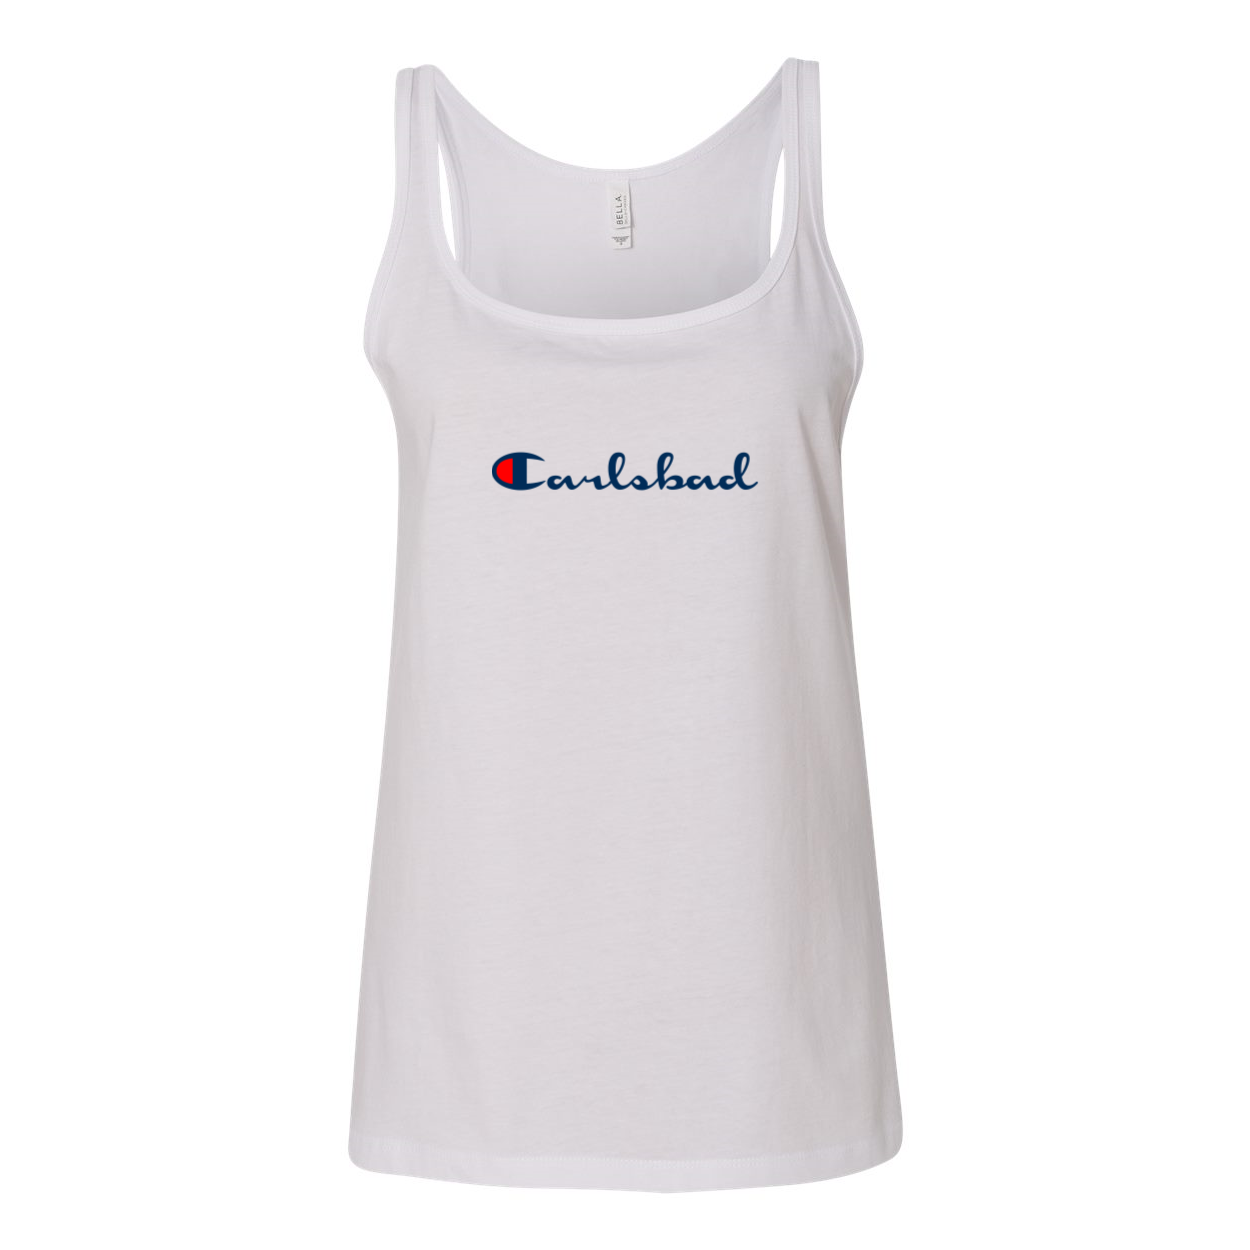 Carlsbad - Tank Top (Women's)